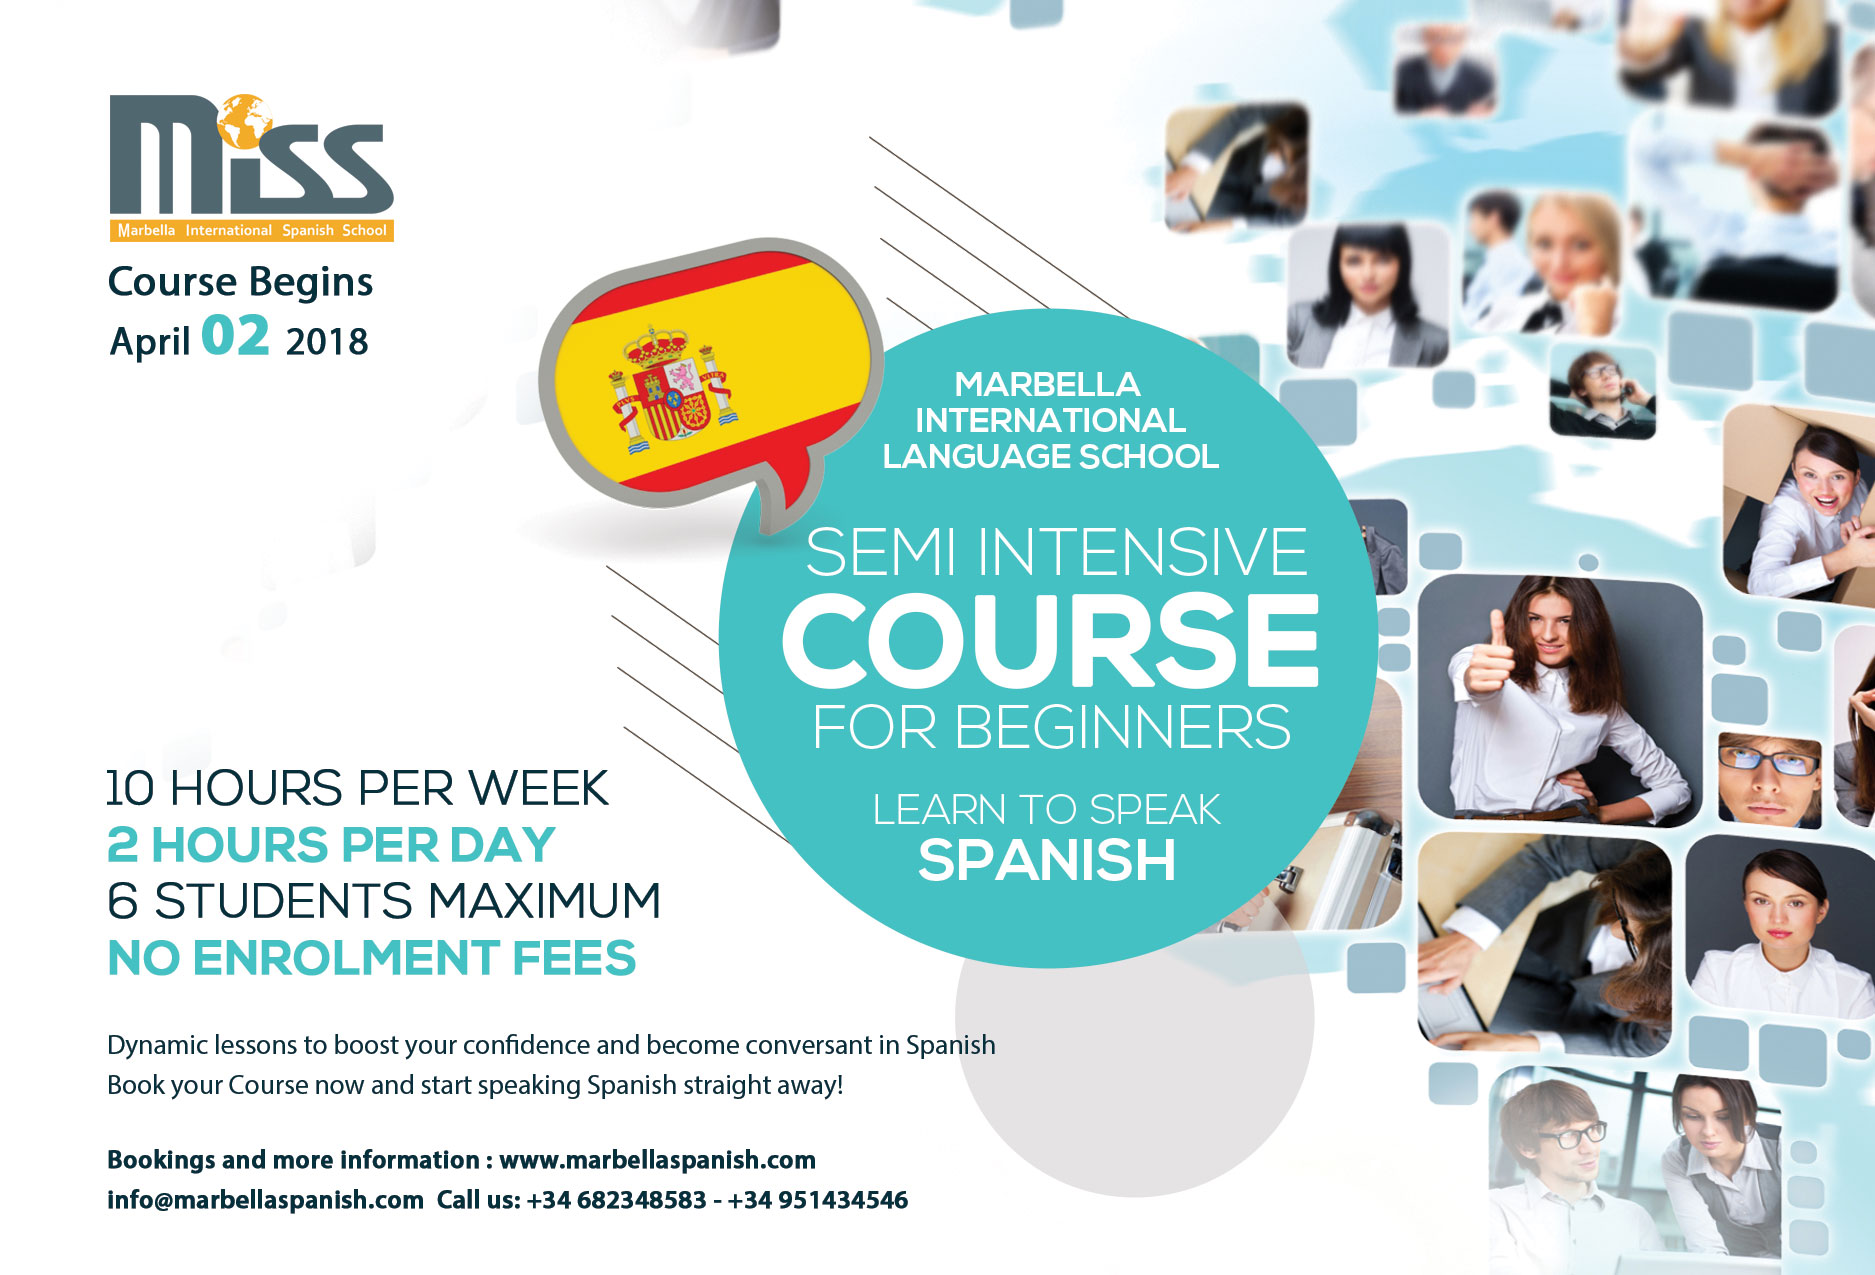 Intensive Spanish Course for Beginners marbella international spanish school.